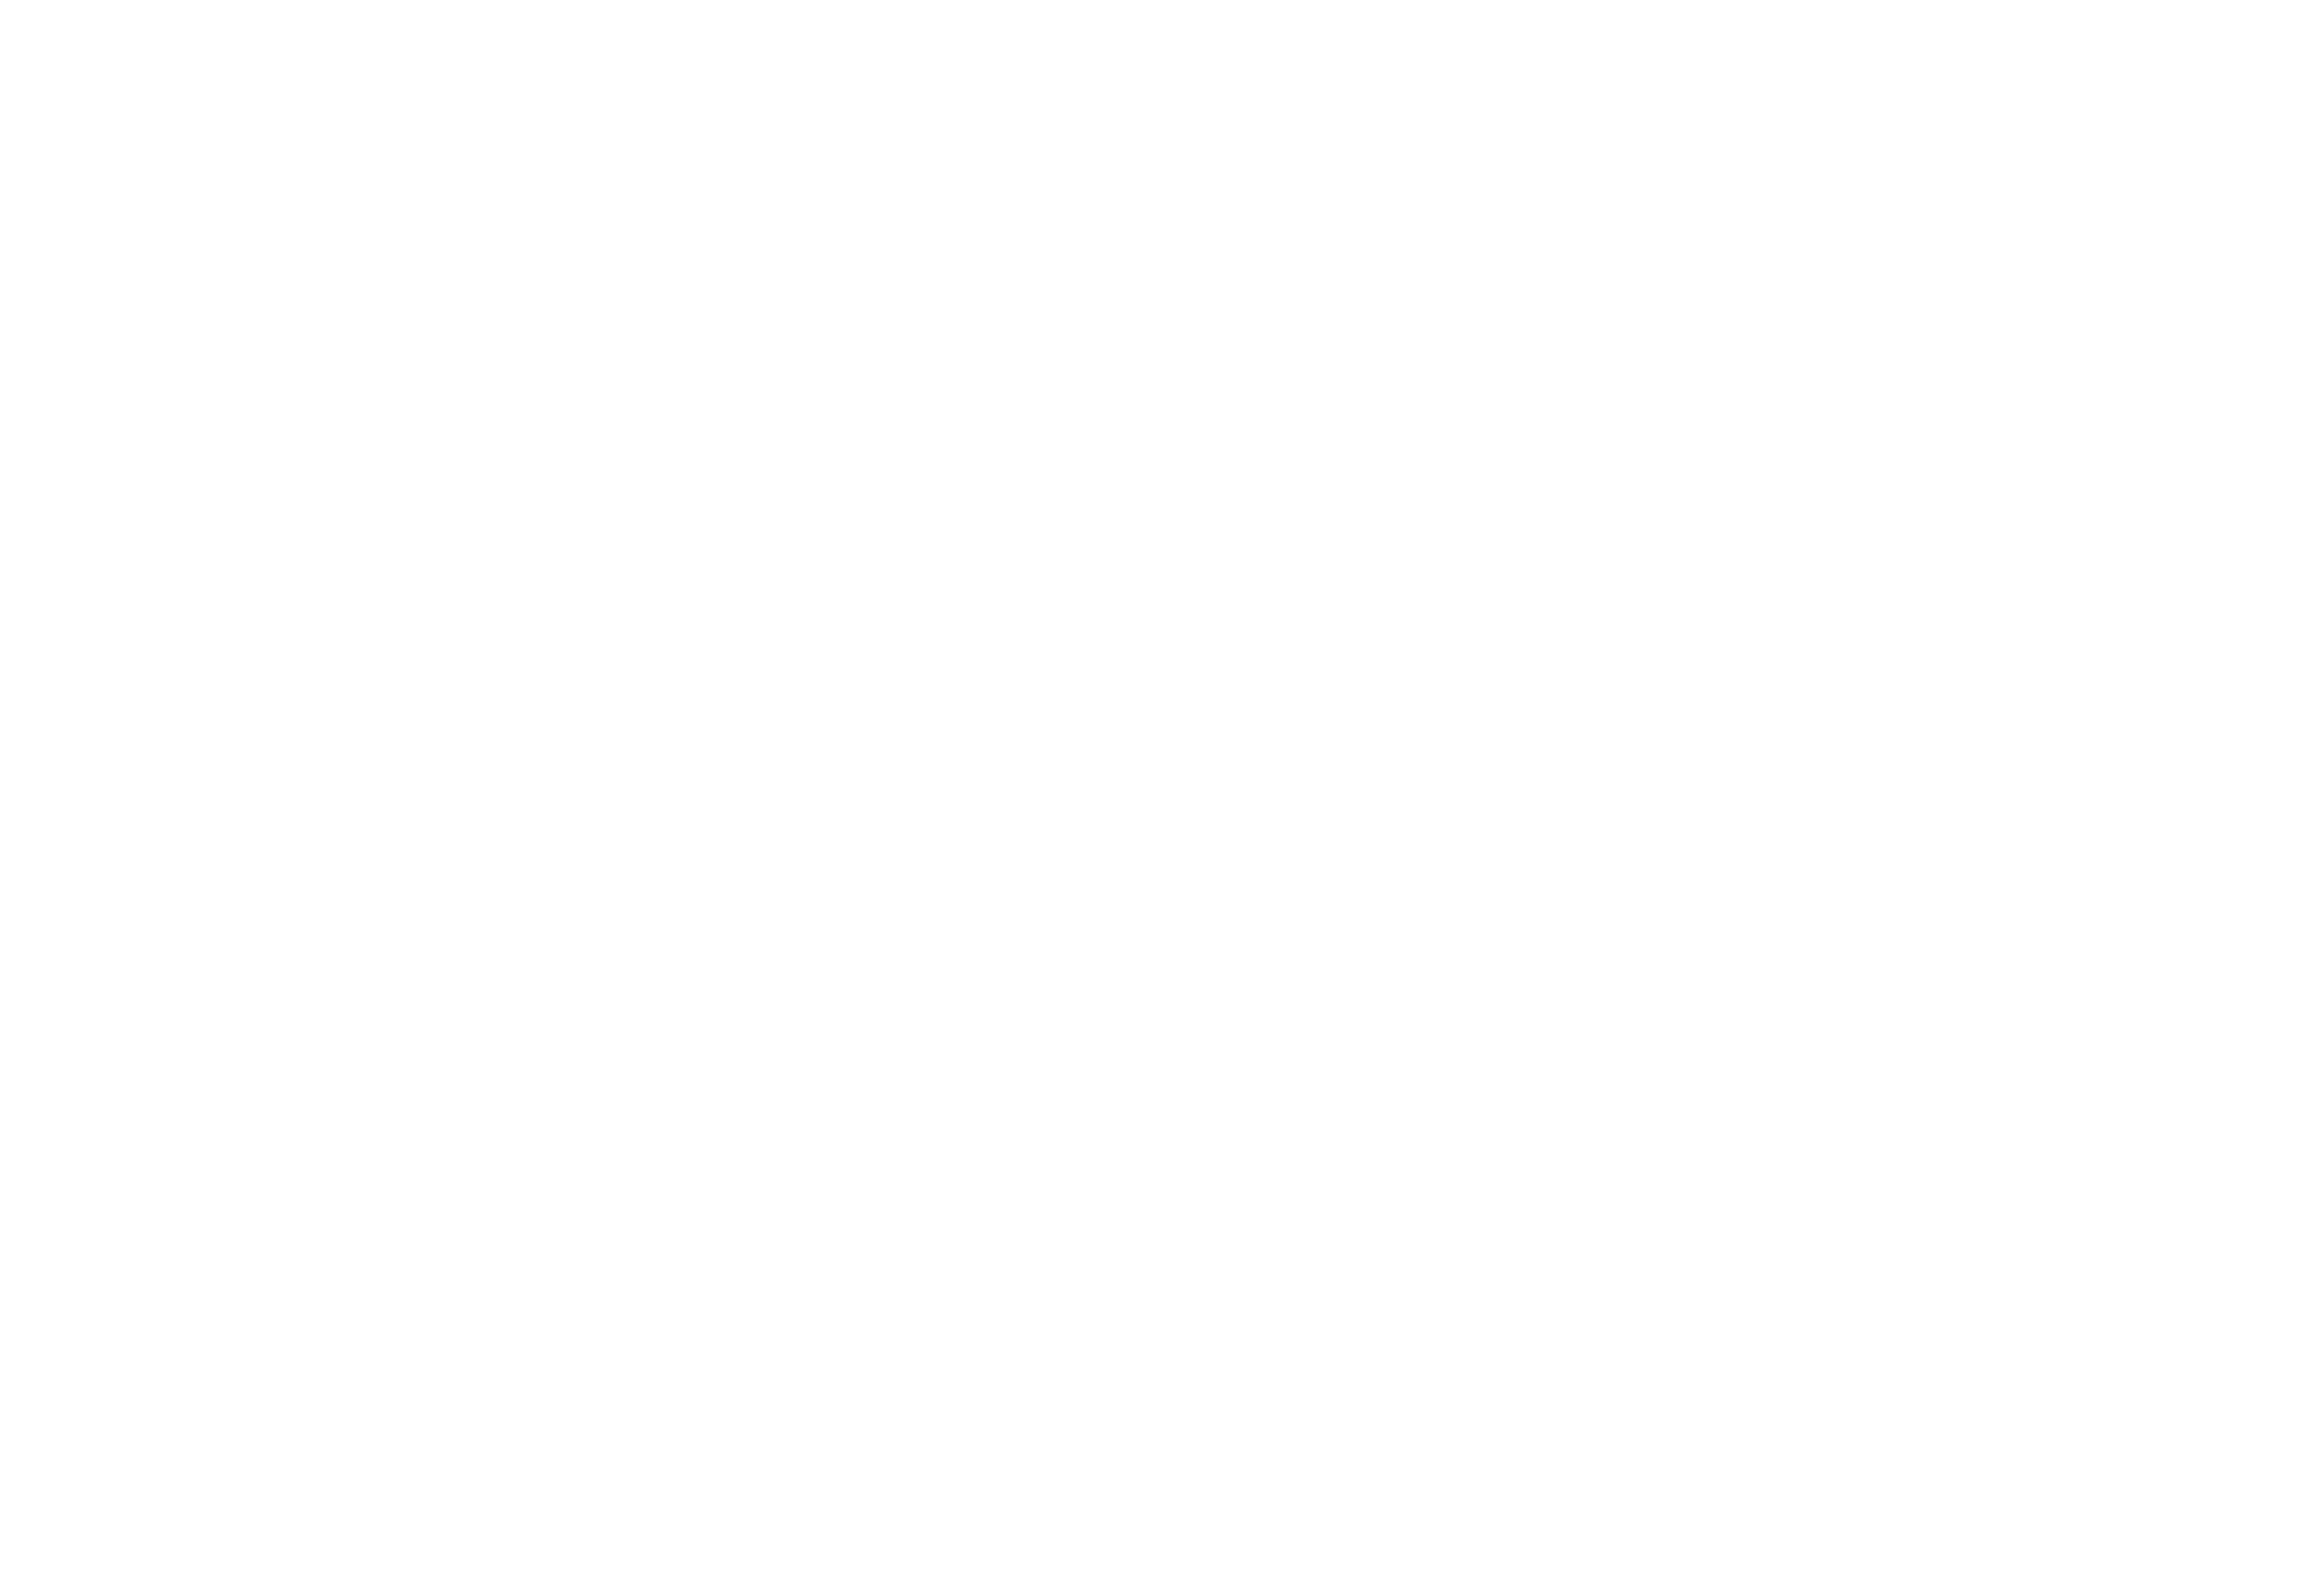 Senior Benefit Services